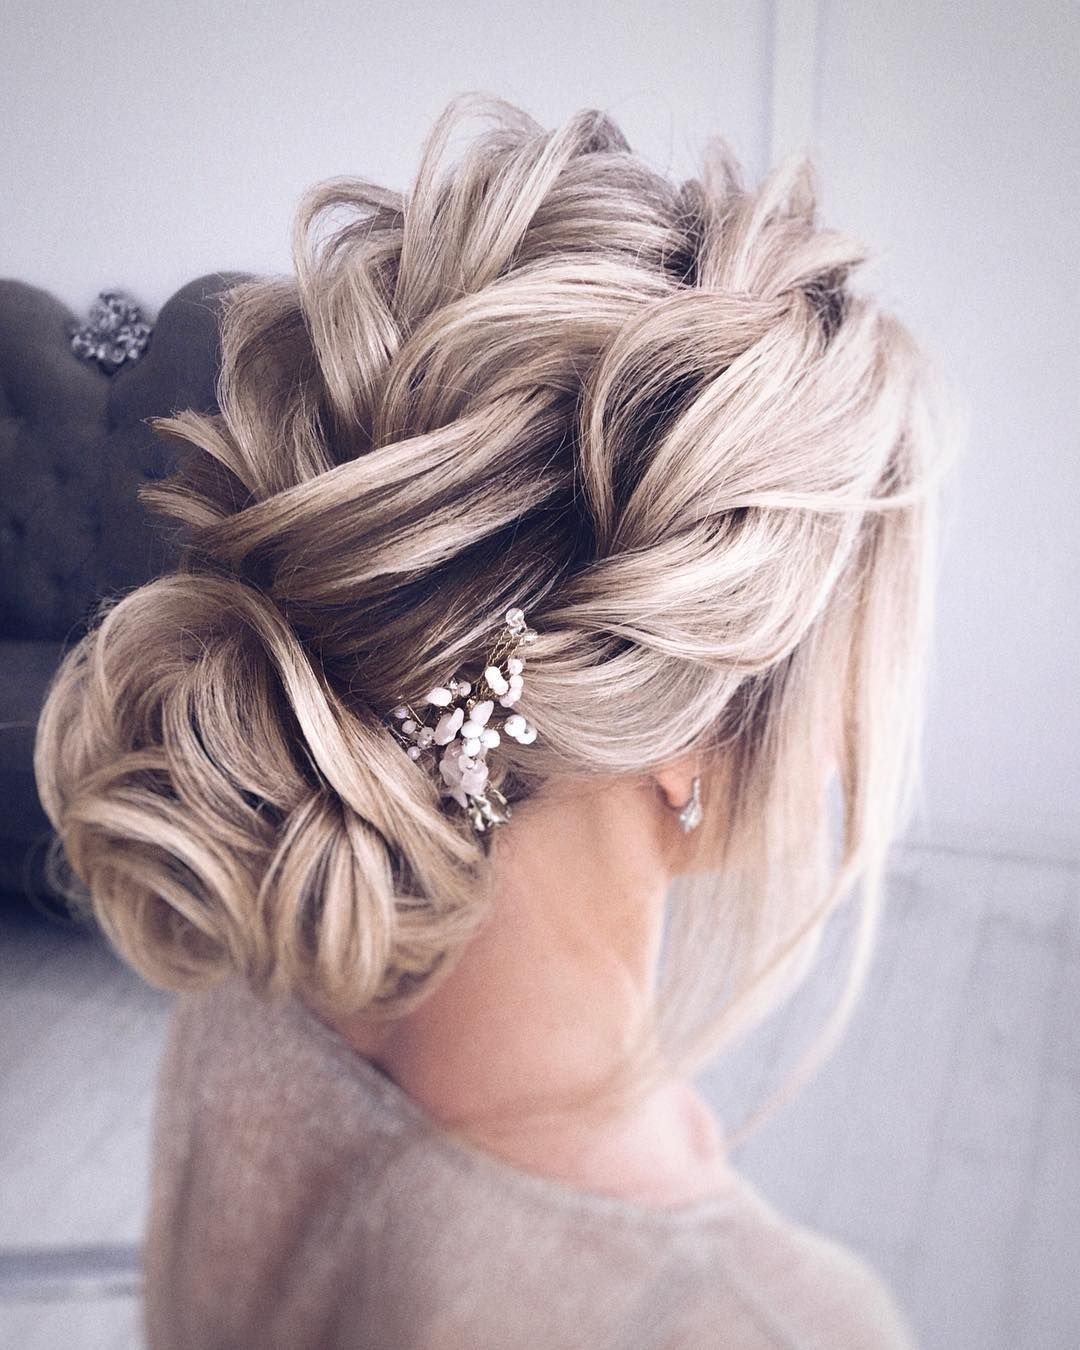 updo braided updo hairstyle ,swept back bridal hairstyle